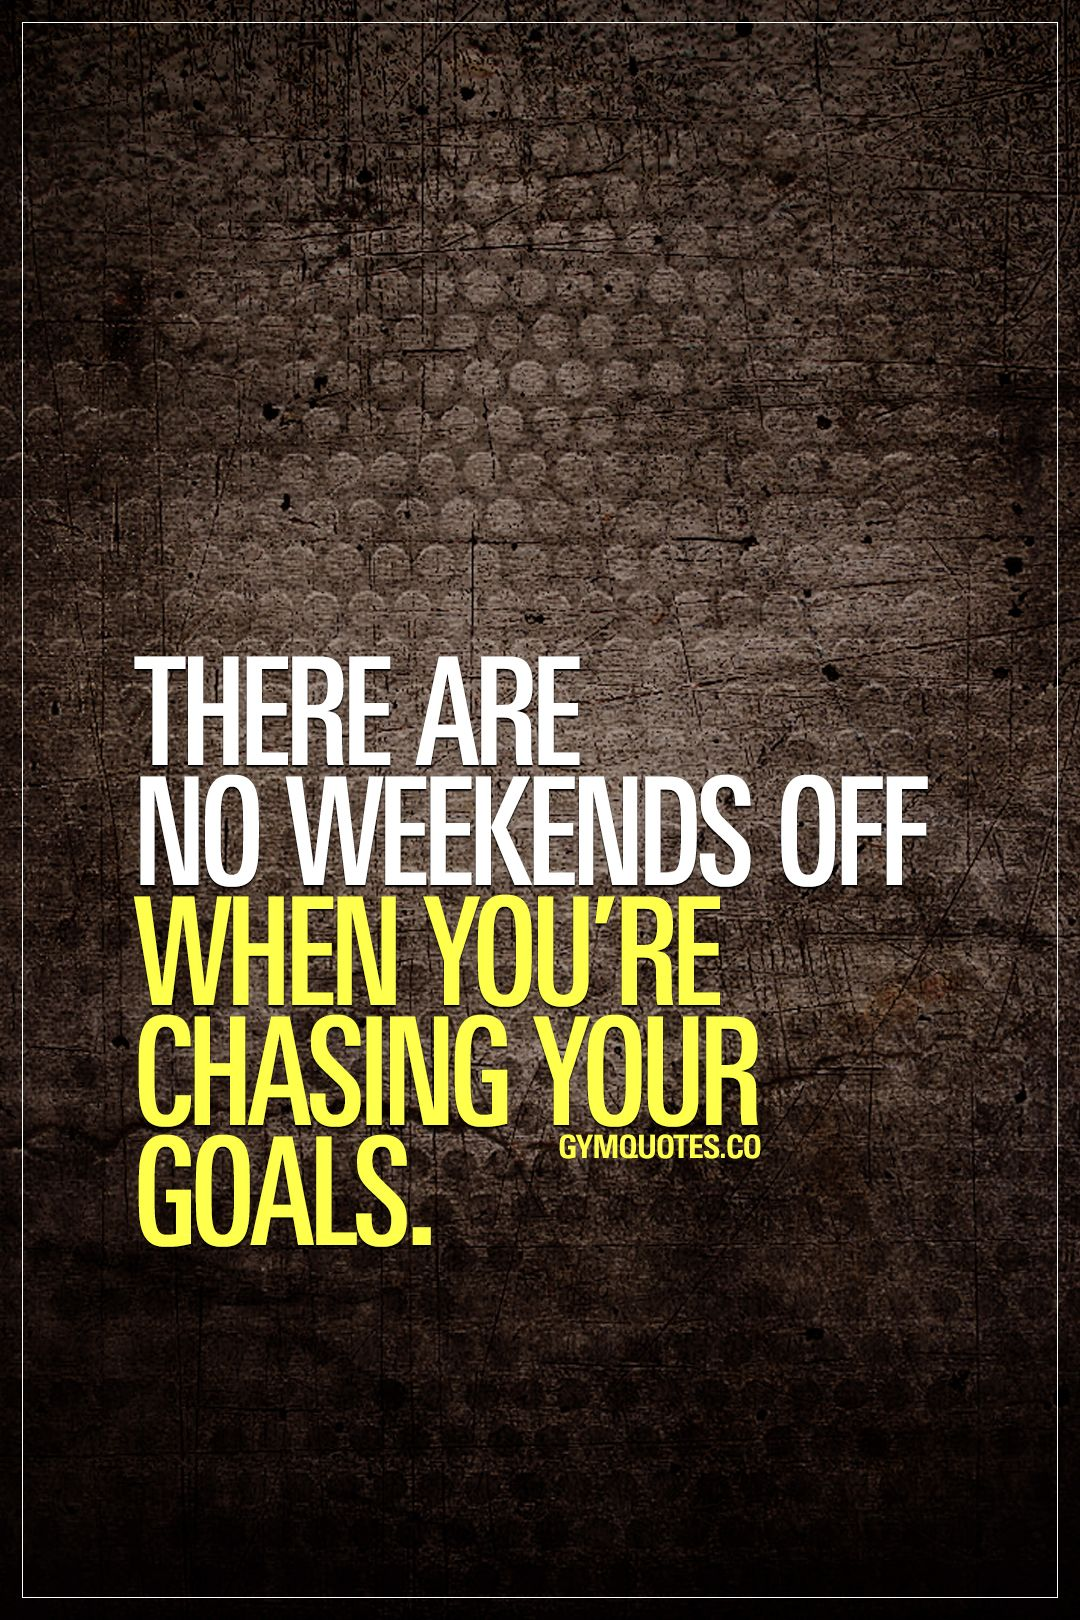 Inspirational Weightloss Quotes Wallpaper There Are No Weekends Off When You Re Chasing Your Goals